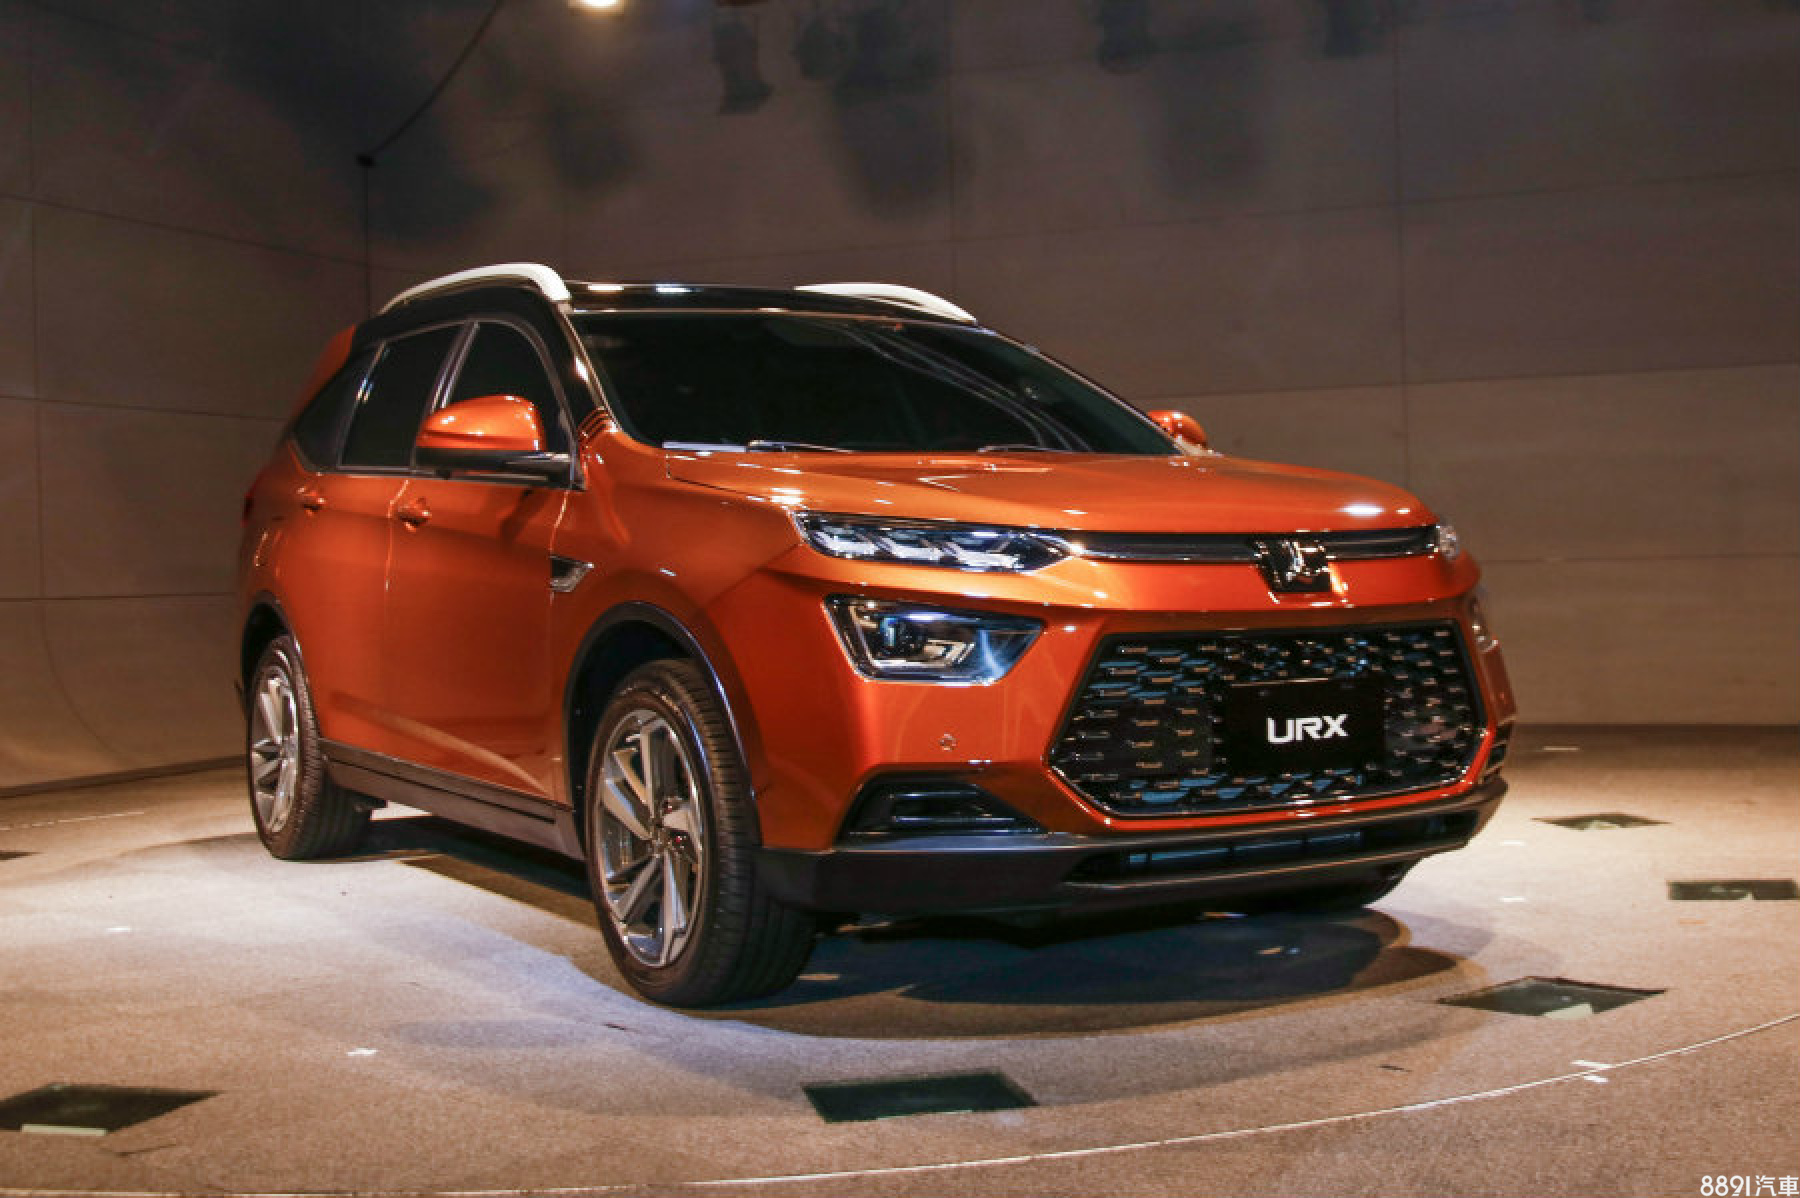 Car manufacturing company Luxgen was founded 10 years ago, but never had much success selling its vehicles. Its newest SUV, called the URX, should attempt to remedy the situation.